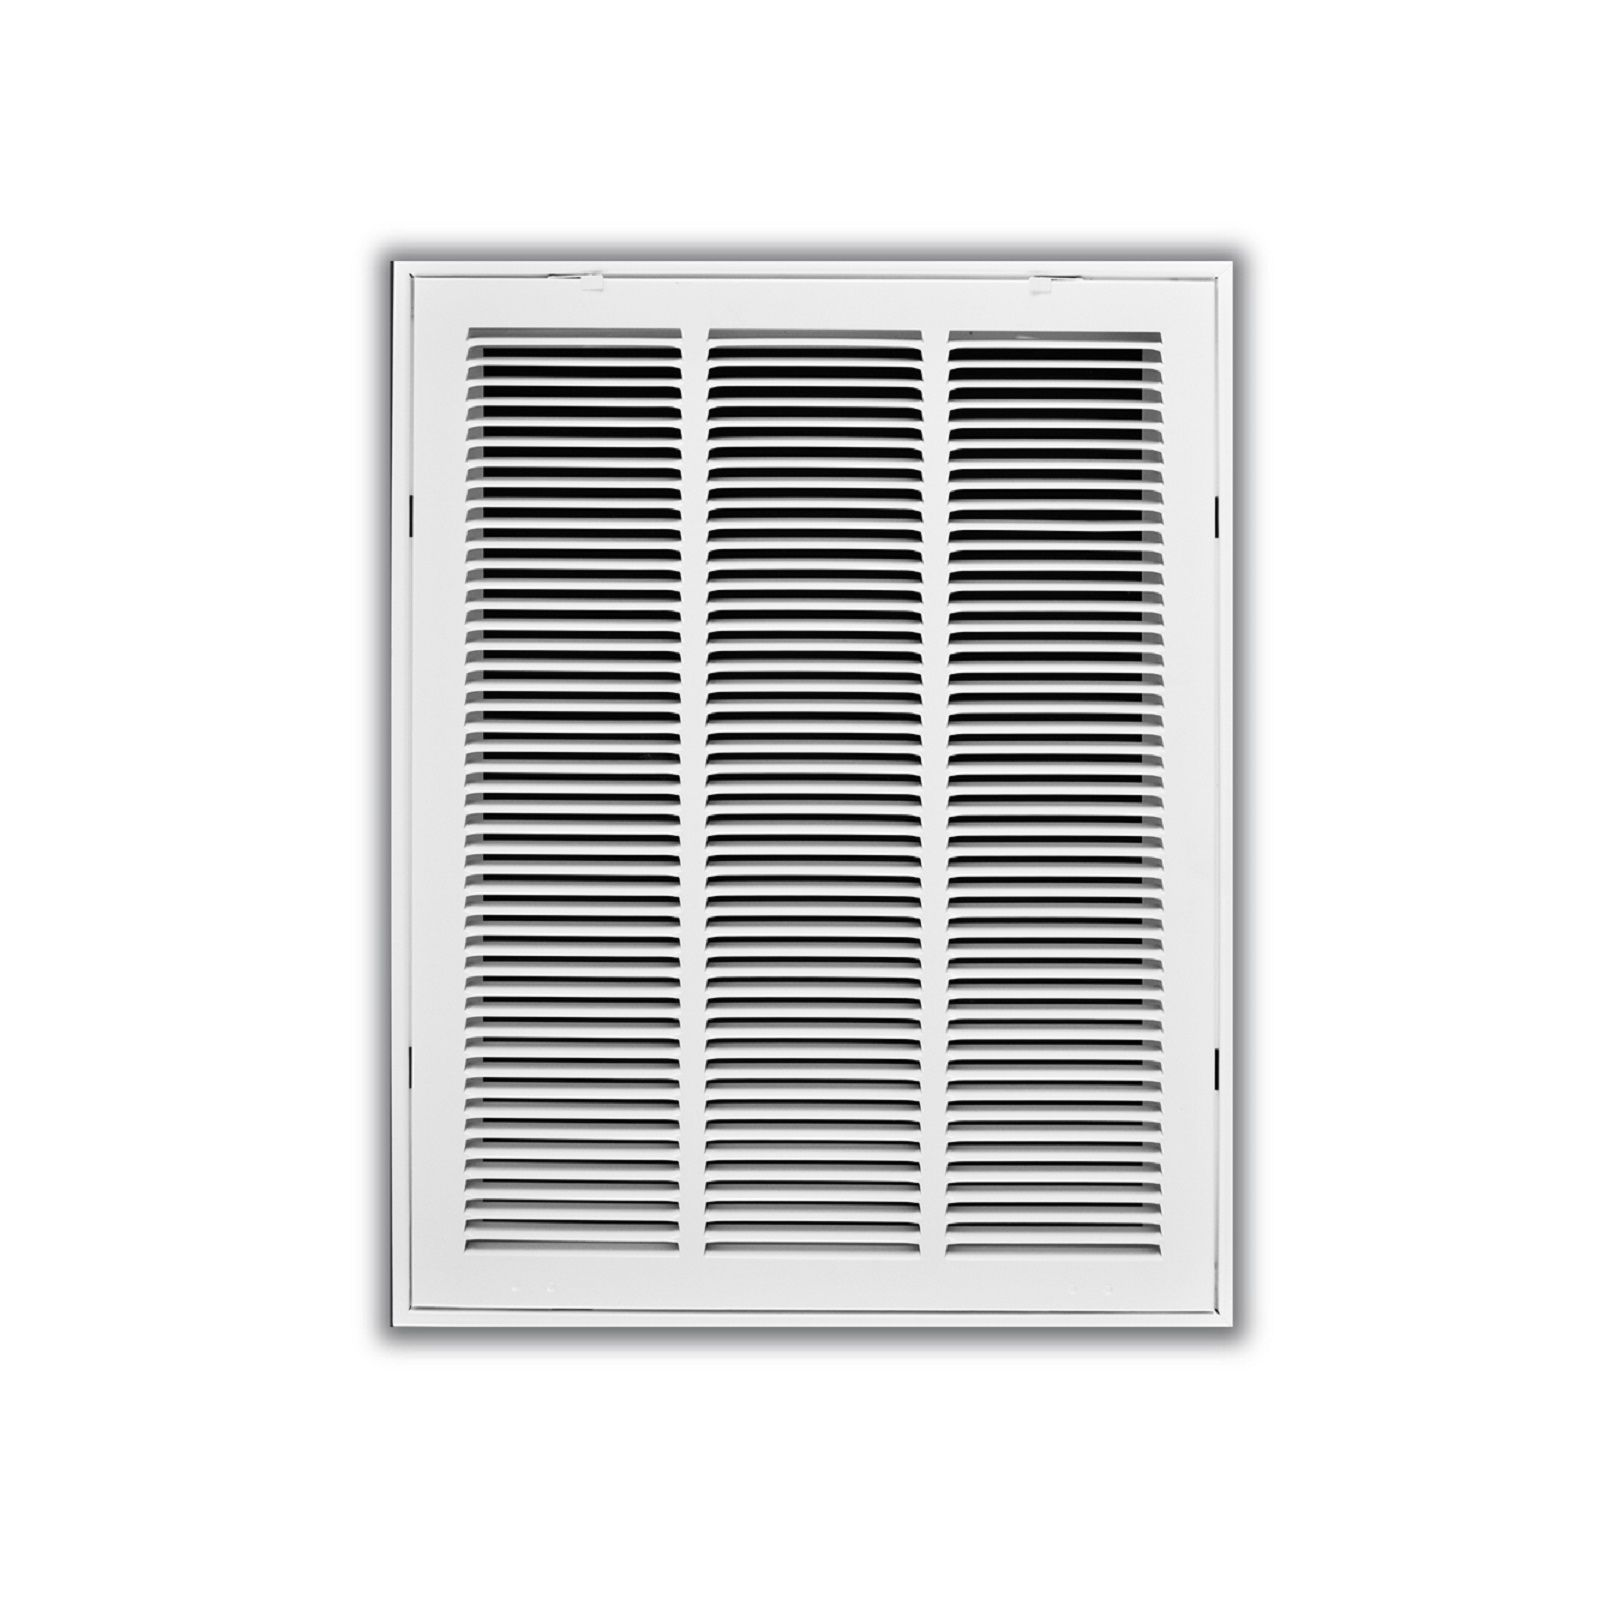 "TRUaire 190 14X30 - Steel Return Air Filter Grille With Fixed Hinged Face, White, 14"" X 30"""